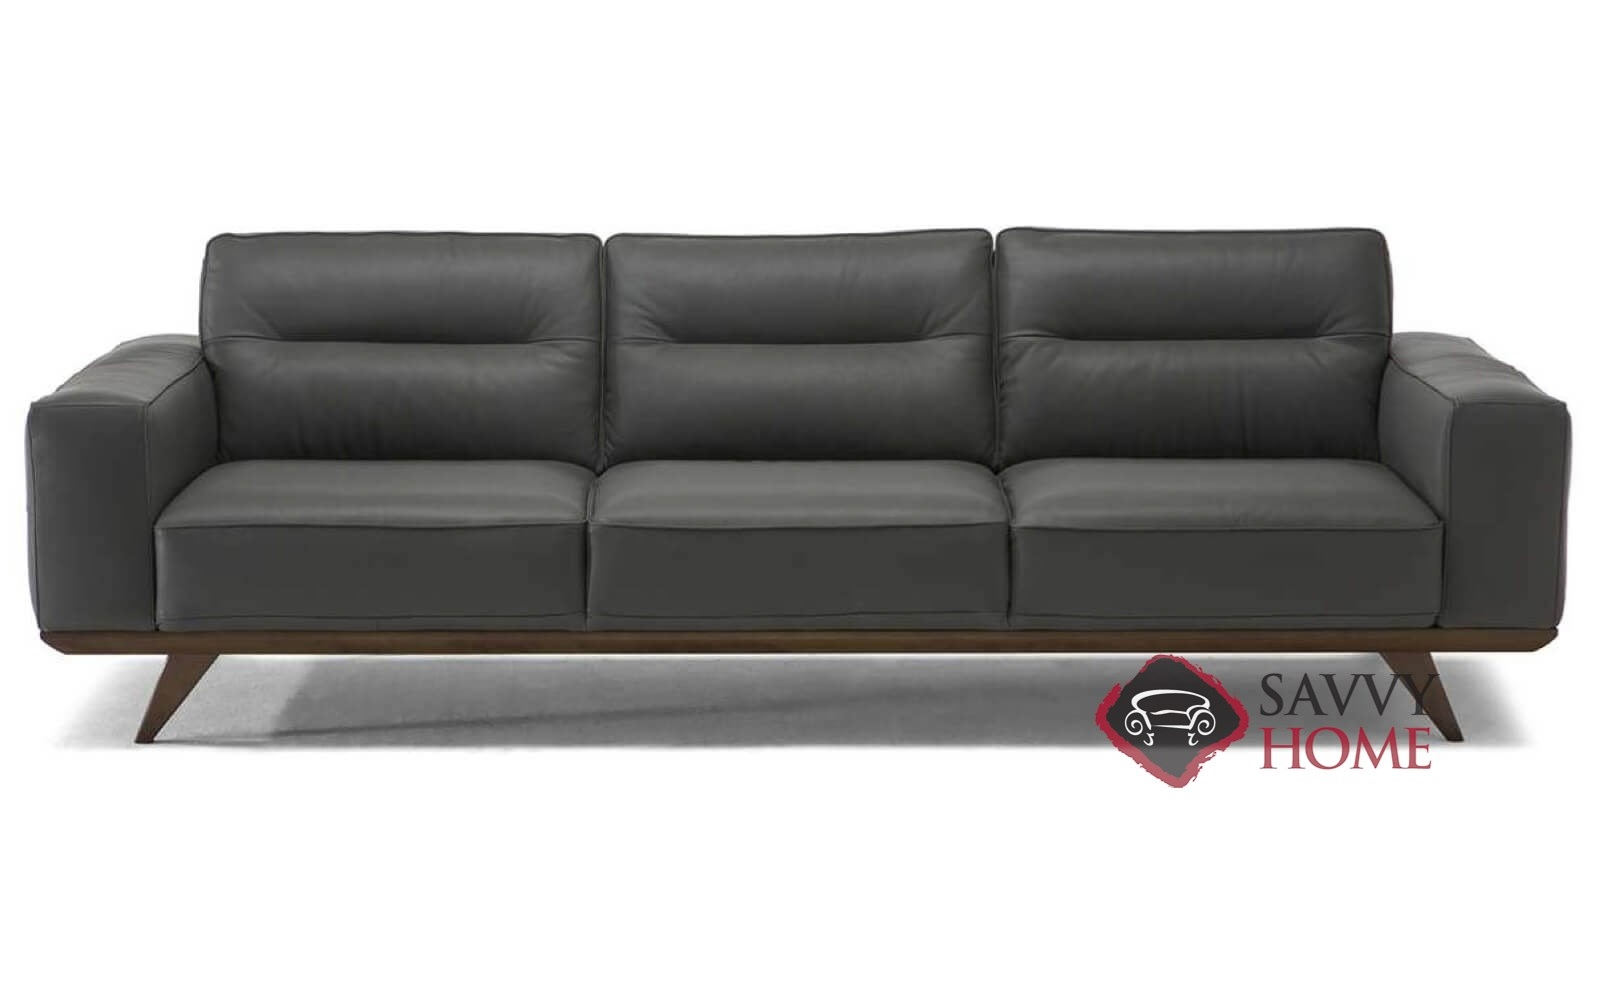 Tiber Leather Sofa By Natuzzi Editions (C006 064)